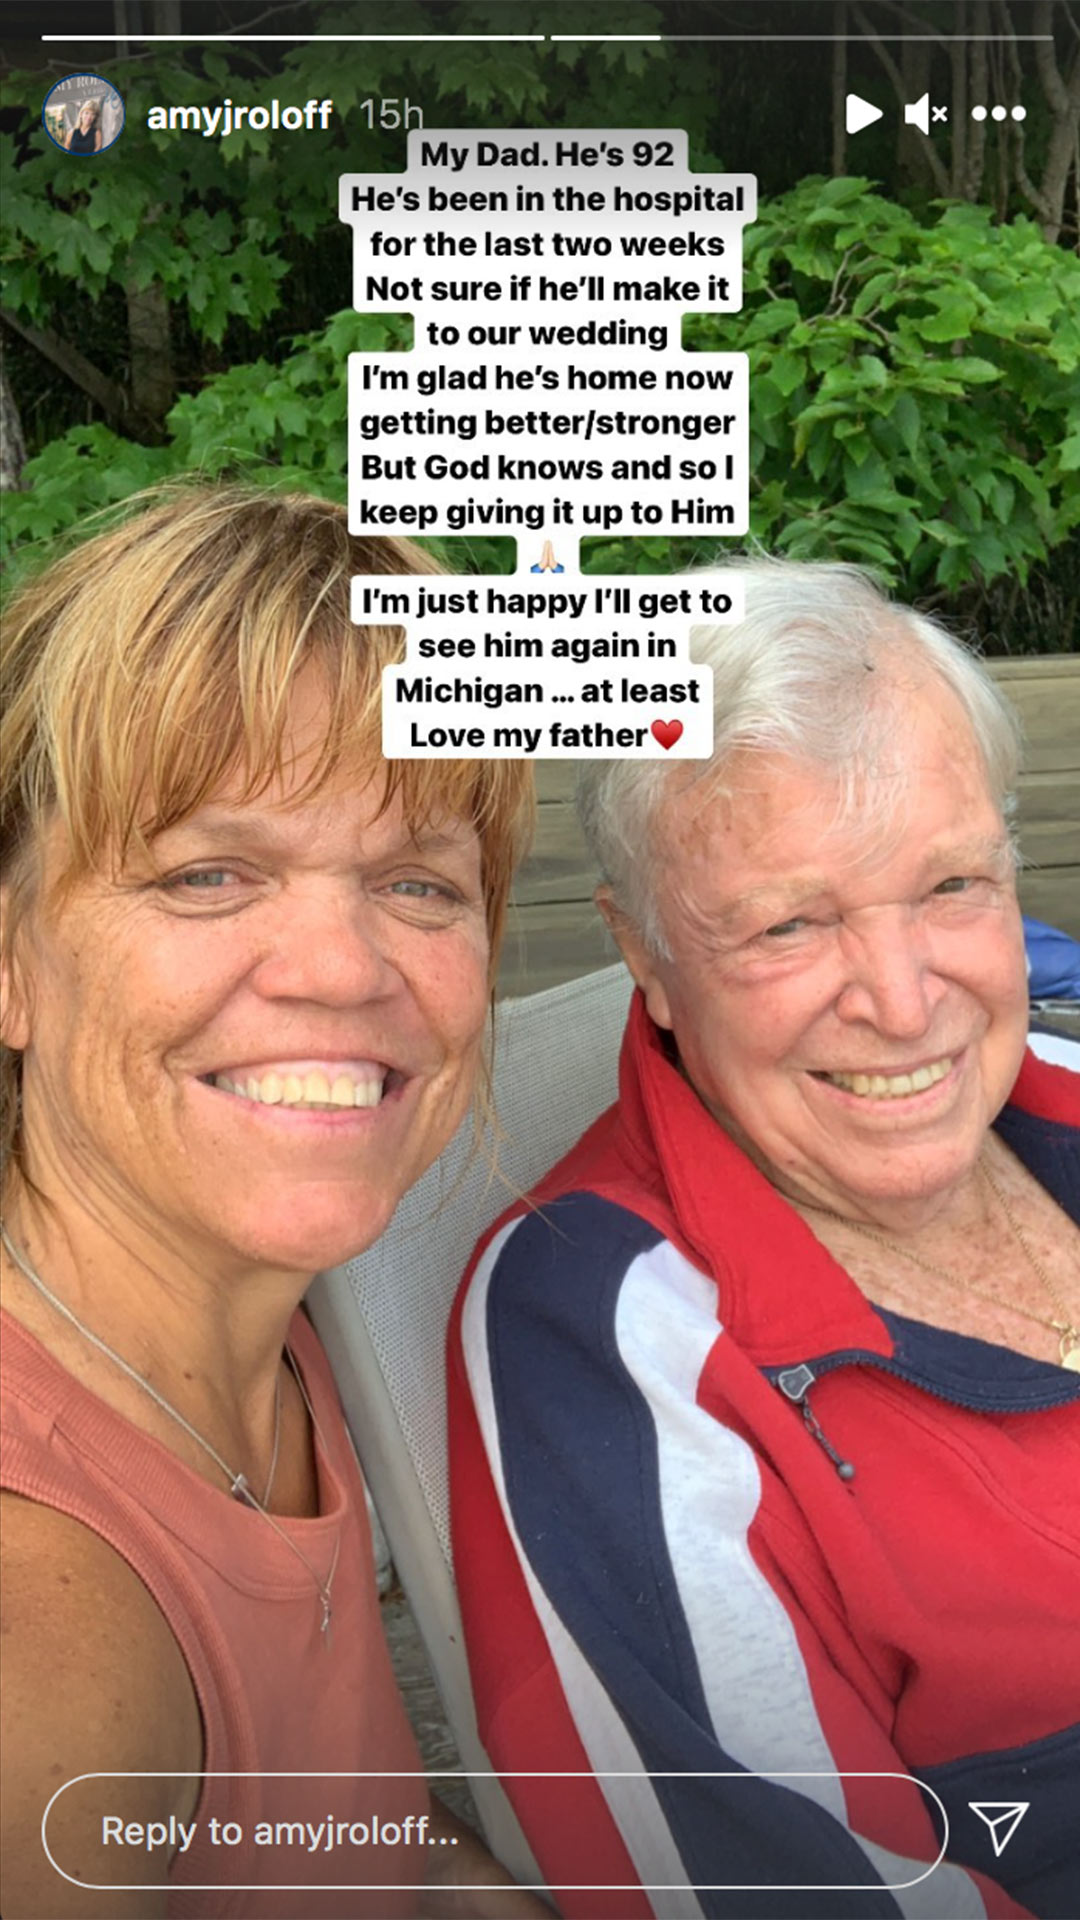 Amy roloff and dad